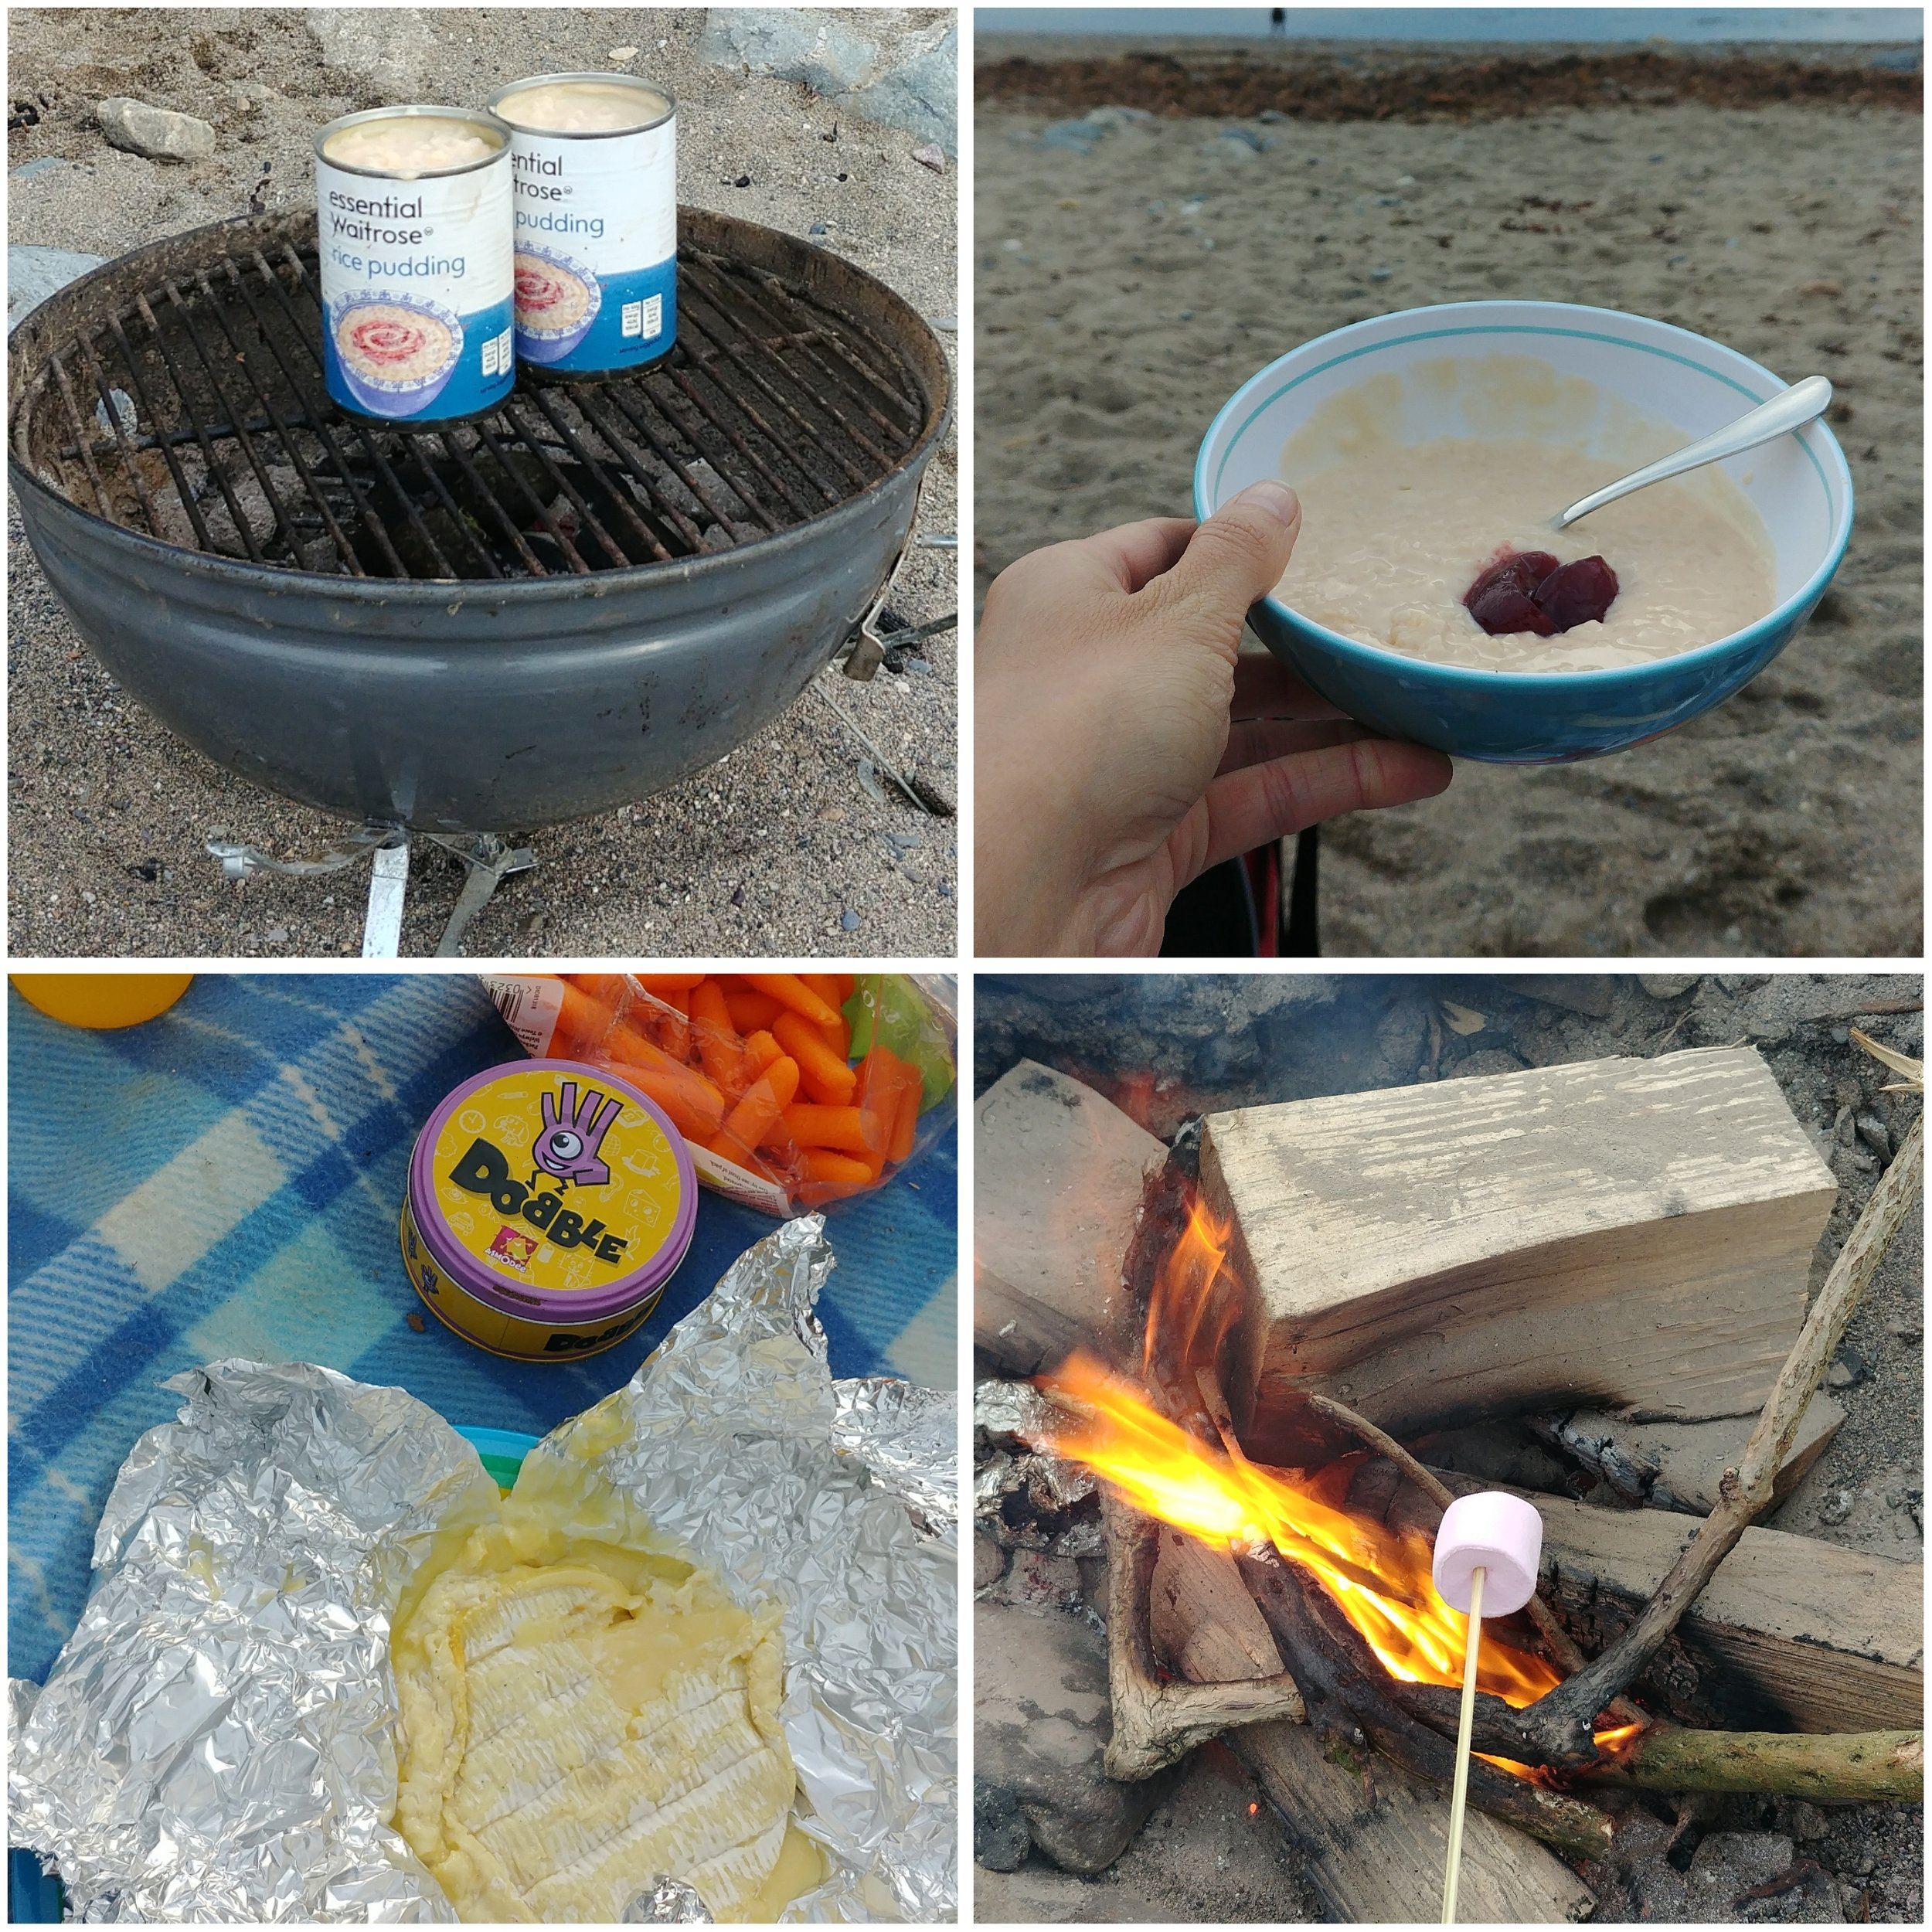 Waitrose rice pudding (obvs), camembert and marshmallows cooked on the beach.